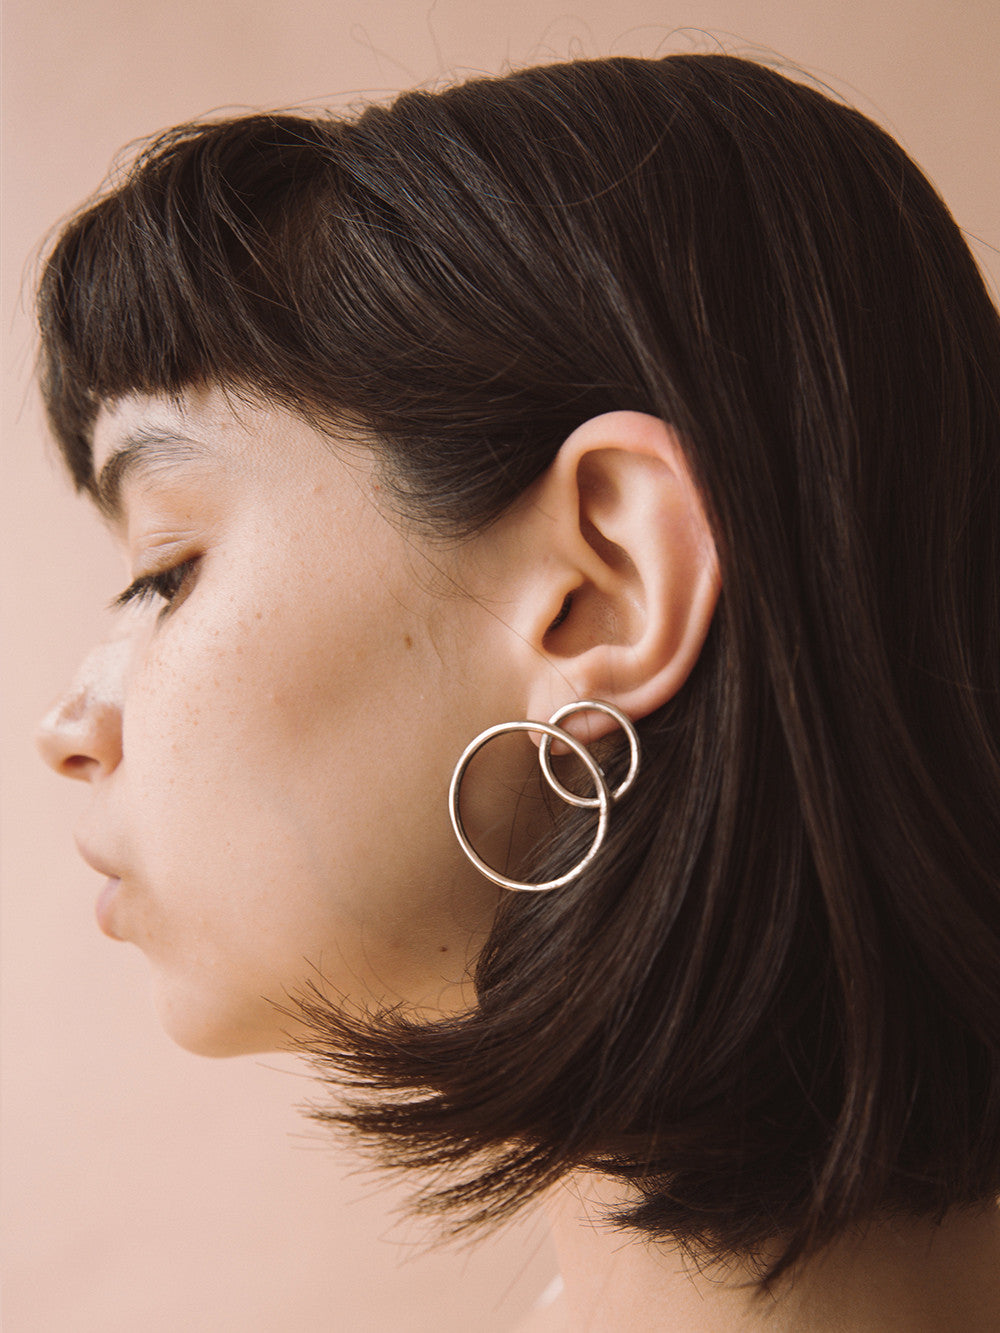 Justine-Clenquet-Lea-Earrings-Scale